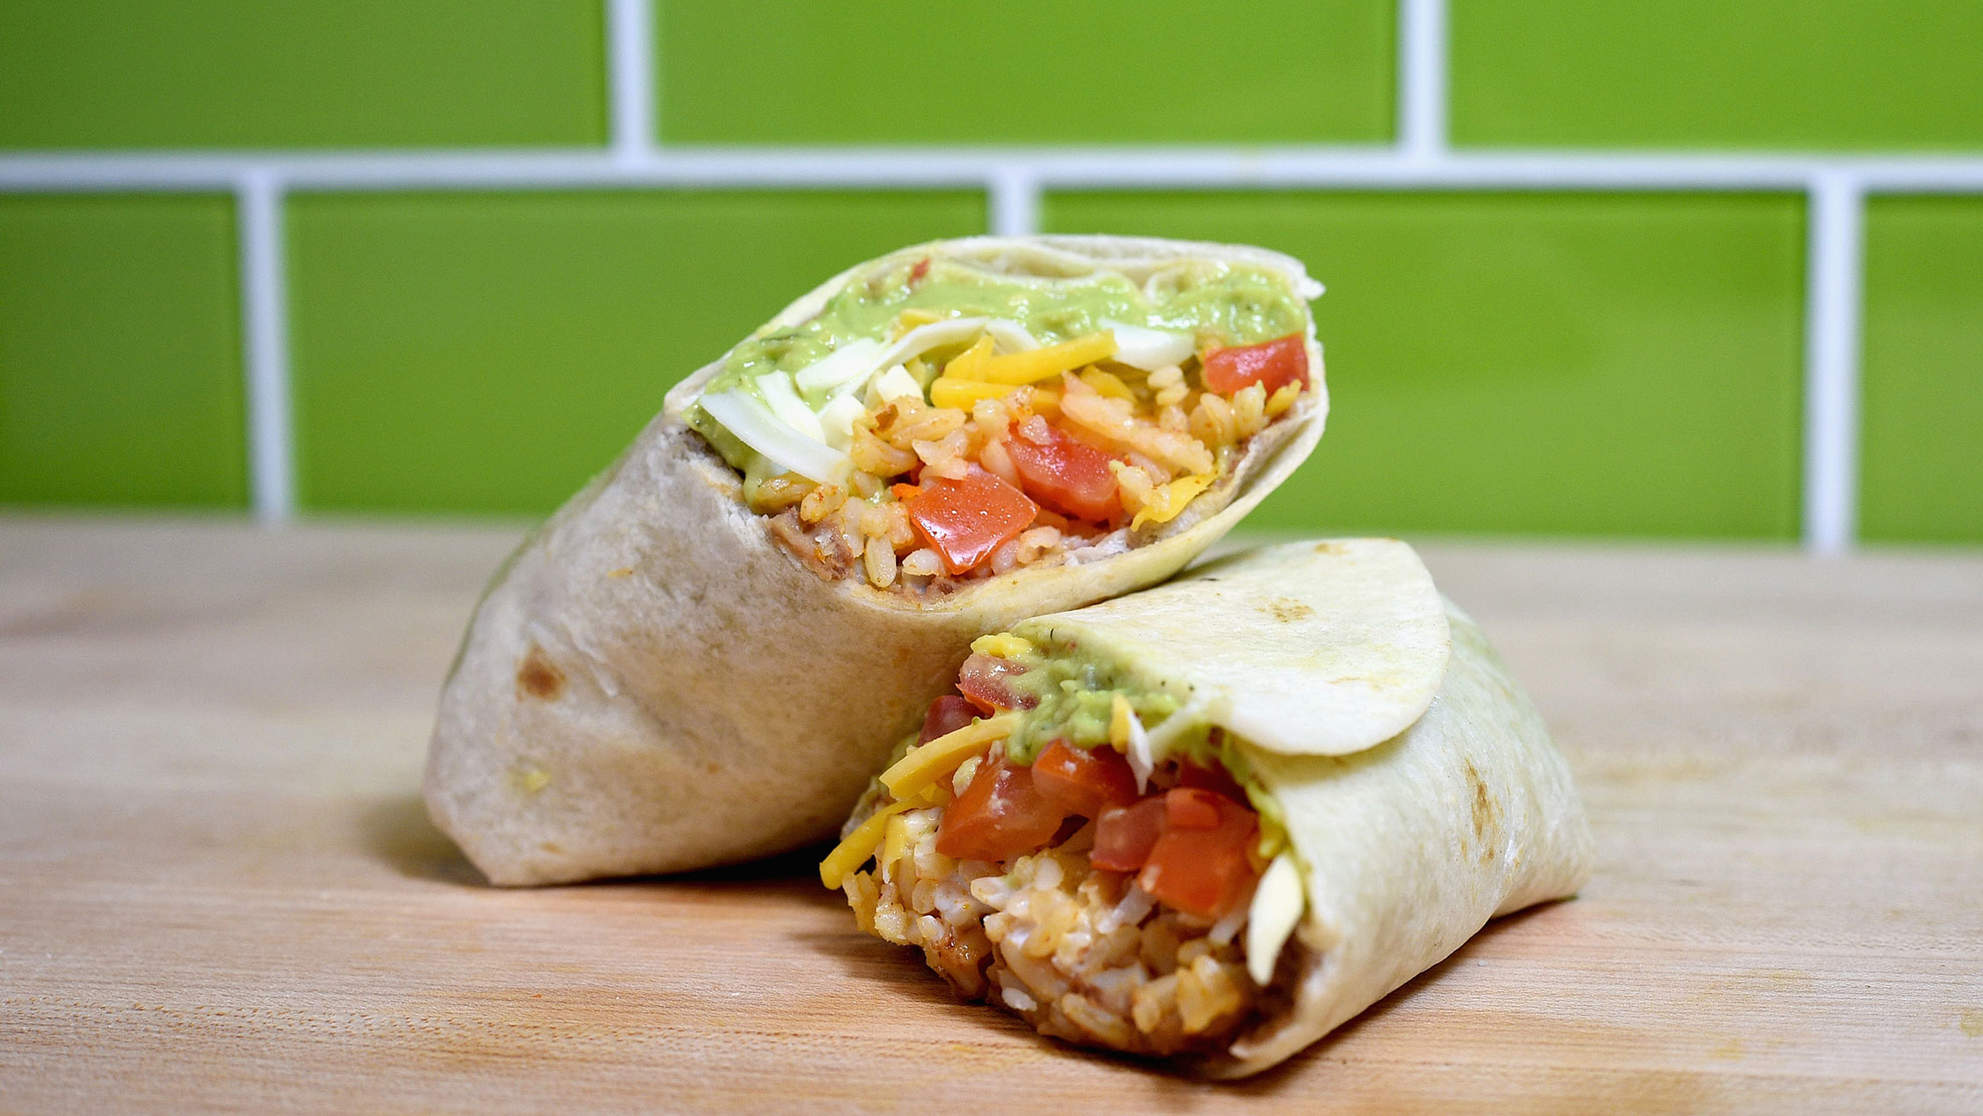 Weird! Taco Bell Has Some Surprisingly Healthy Options